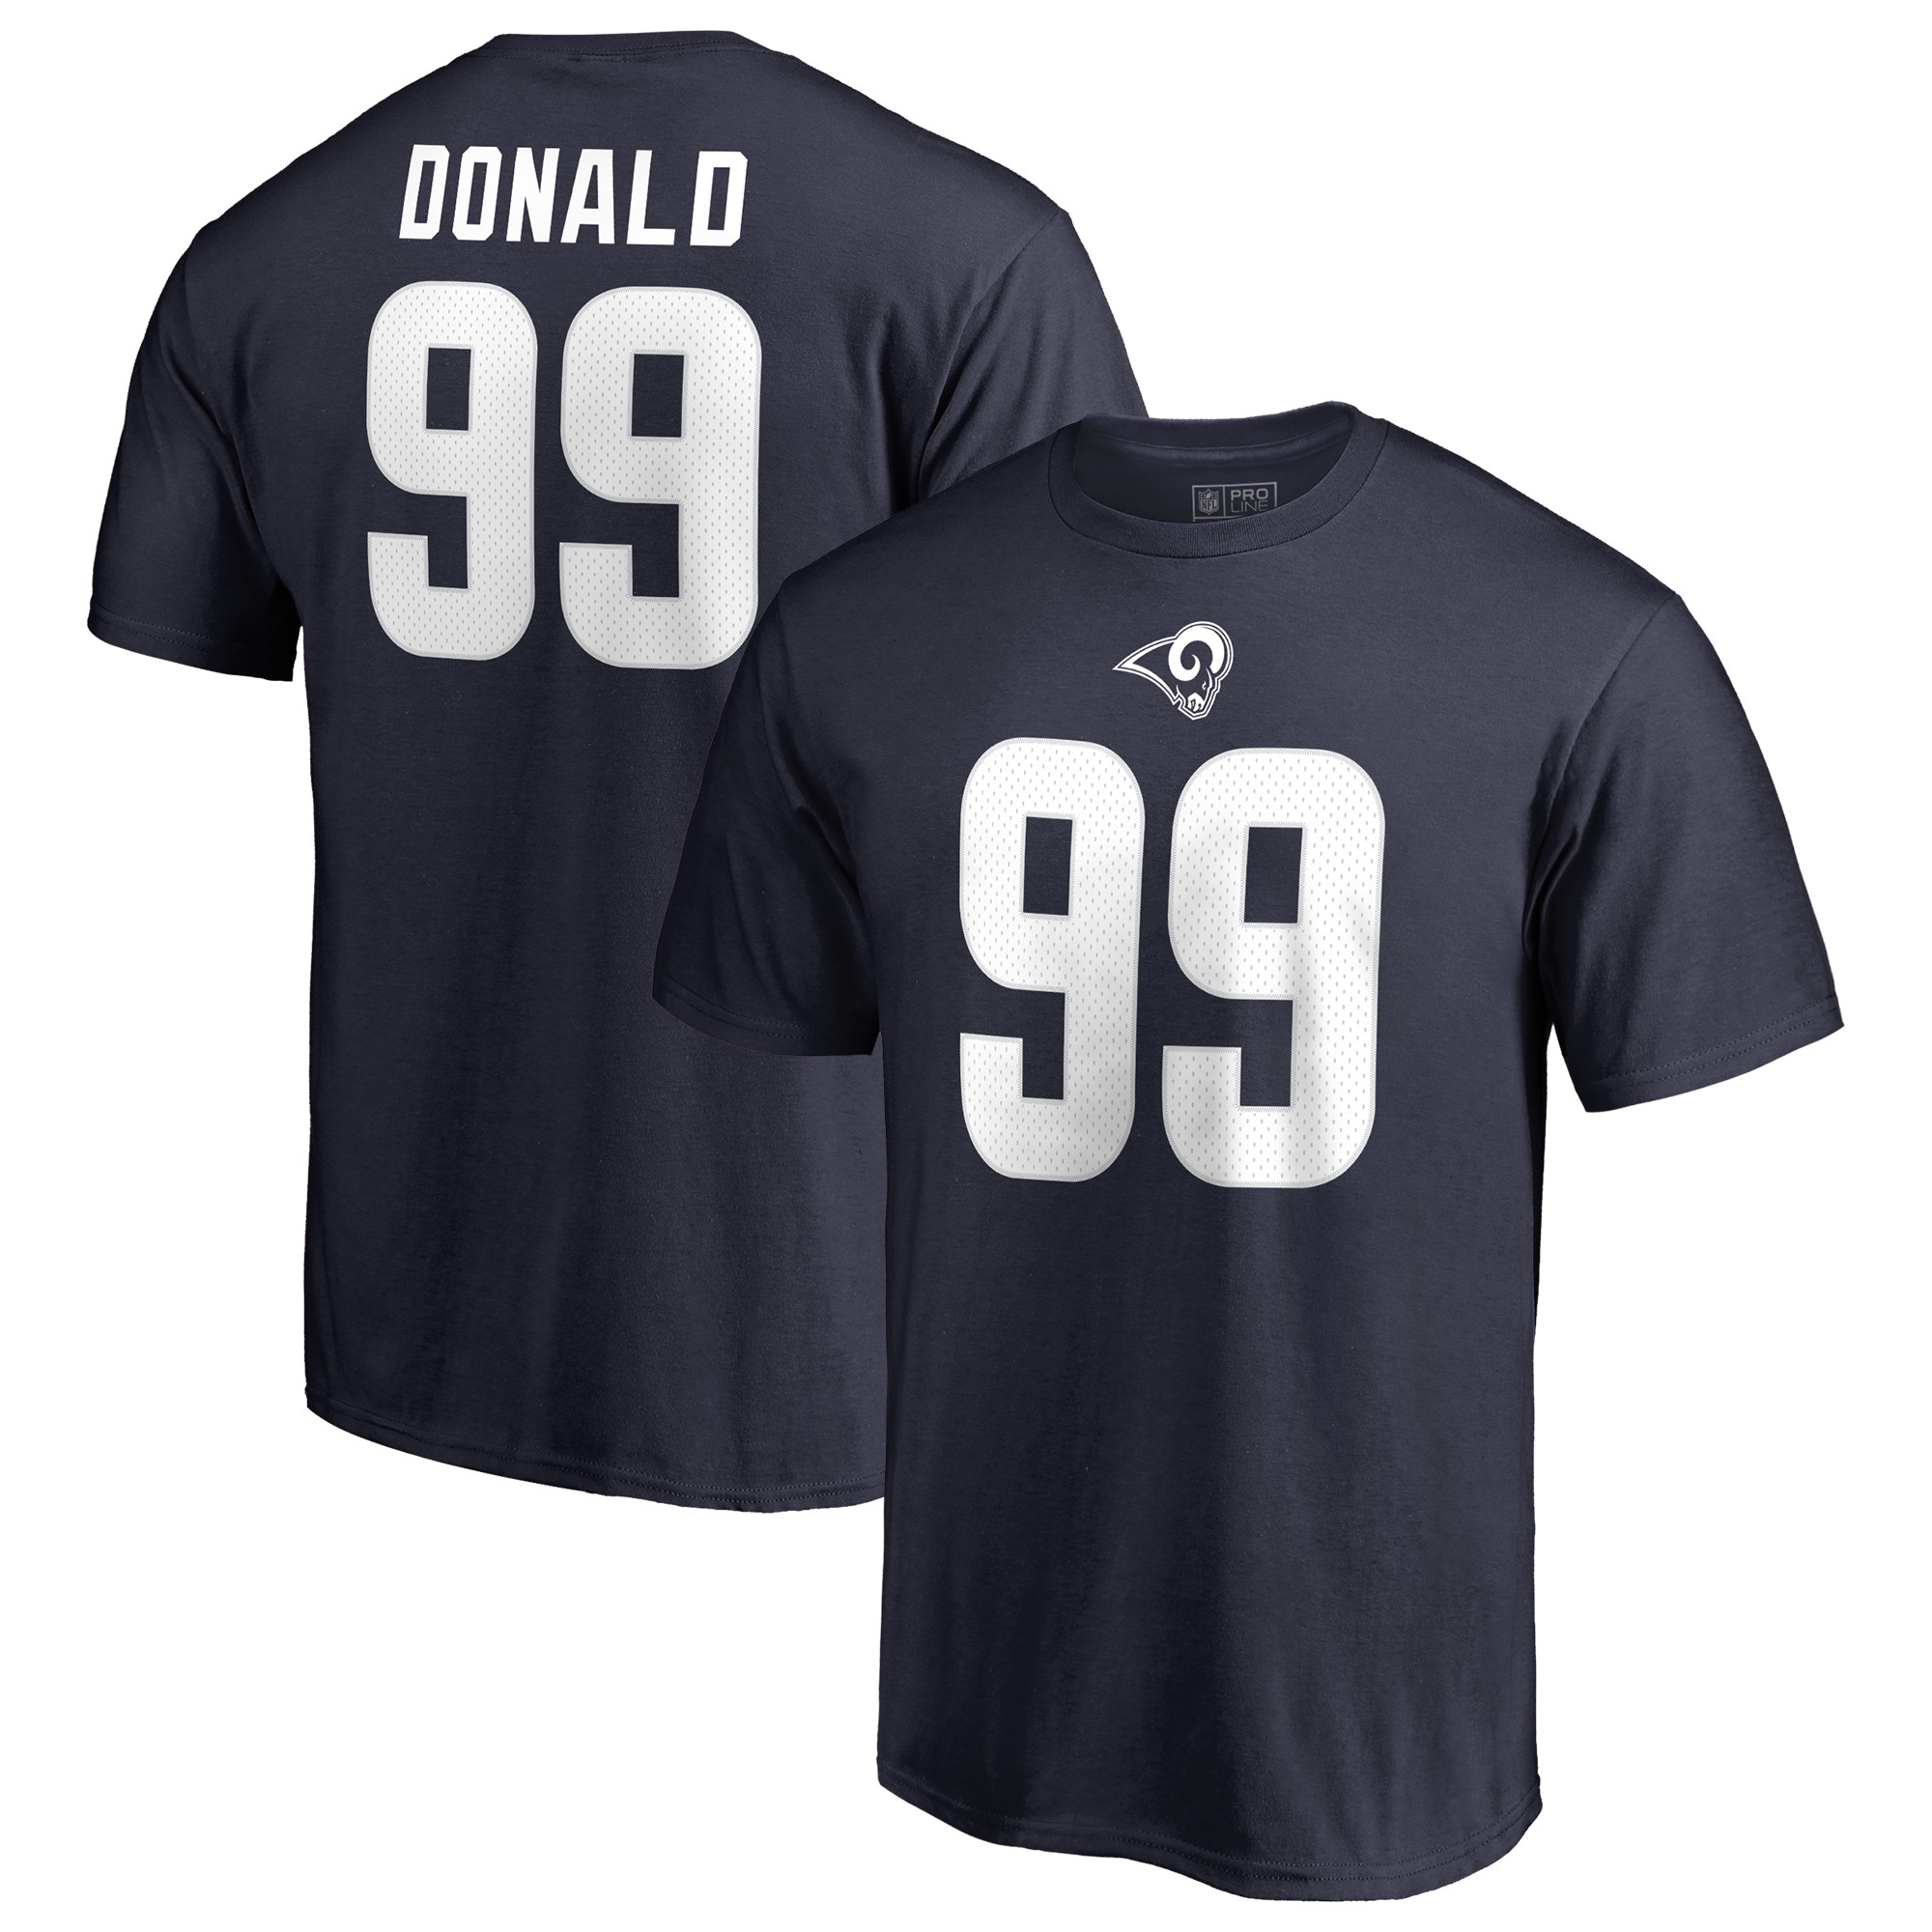 online store e1091 78851 Aaron Donald Los Angeles Rams NFL Pro Line by Fanatics Branded Team  Authentic Stack Name & Number T-Shirt - Navy